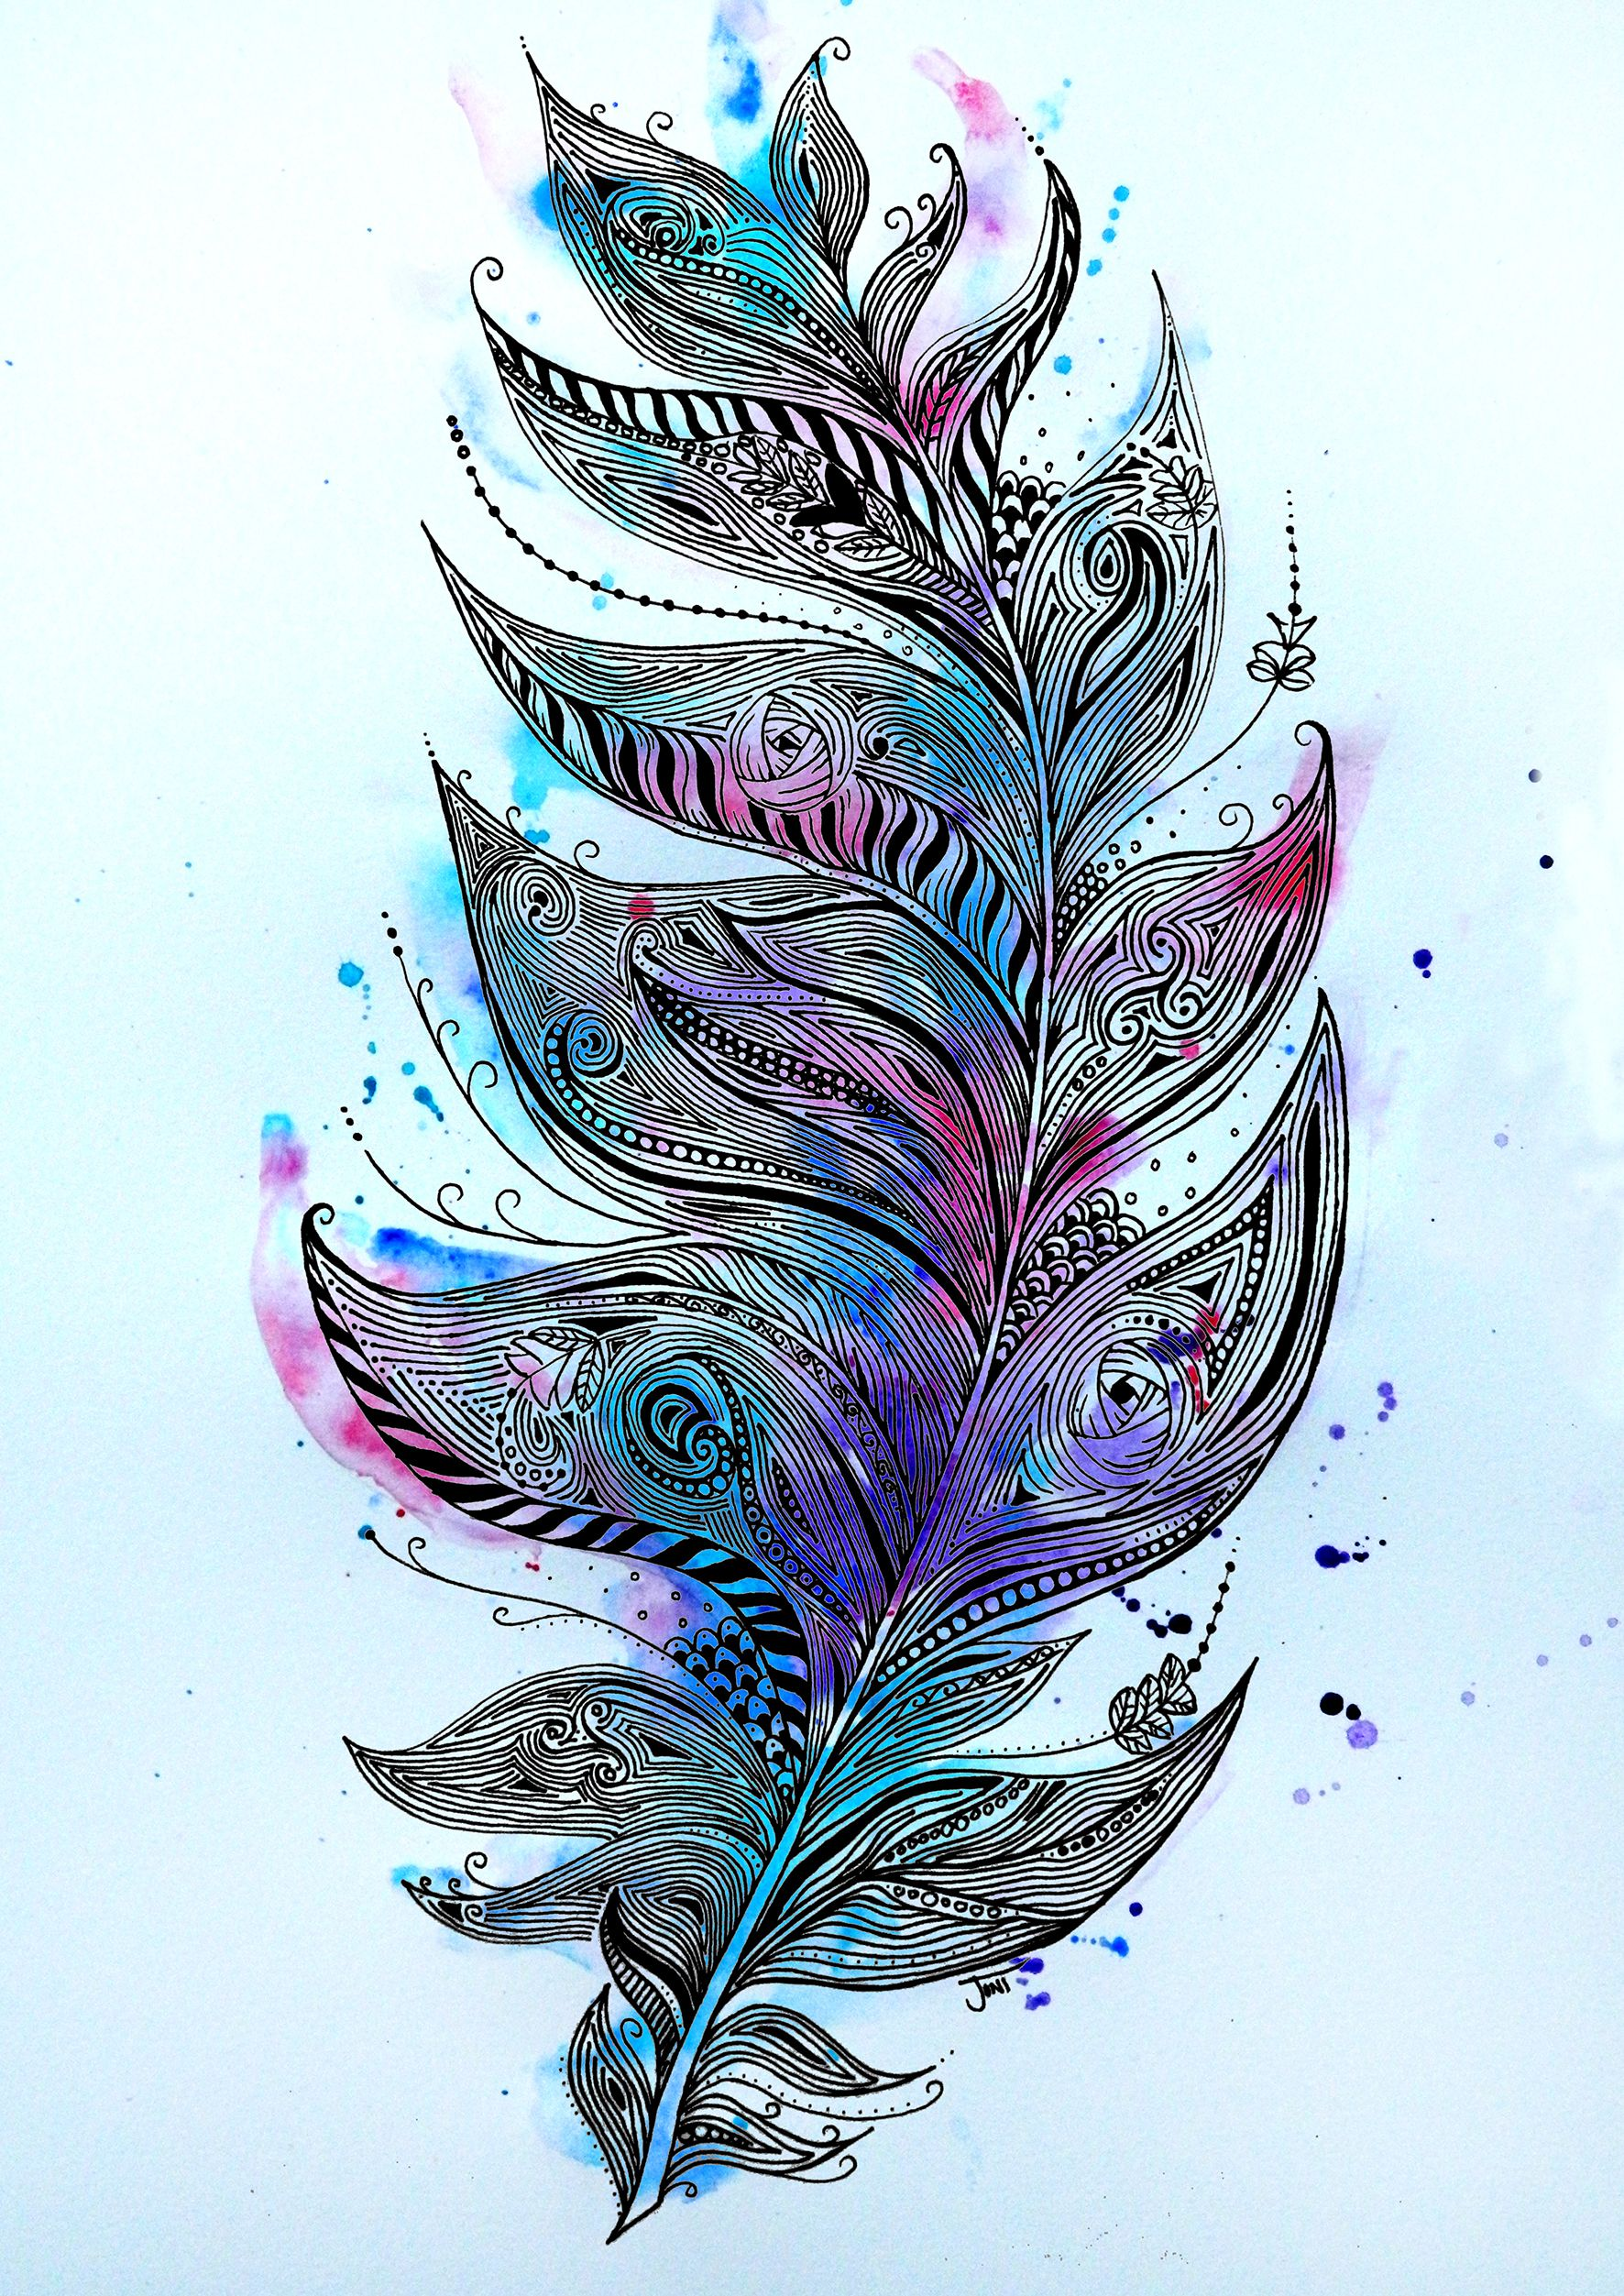 Zentangle Feather Illustration Ink Pen Hand Drawing With